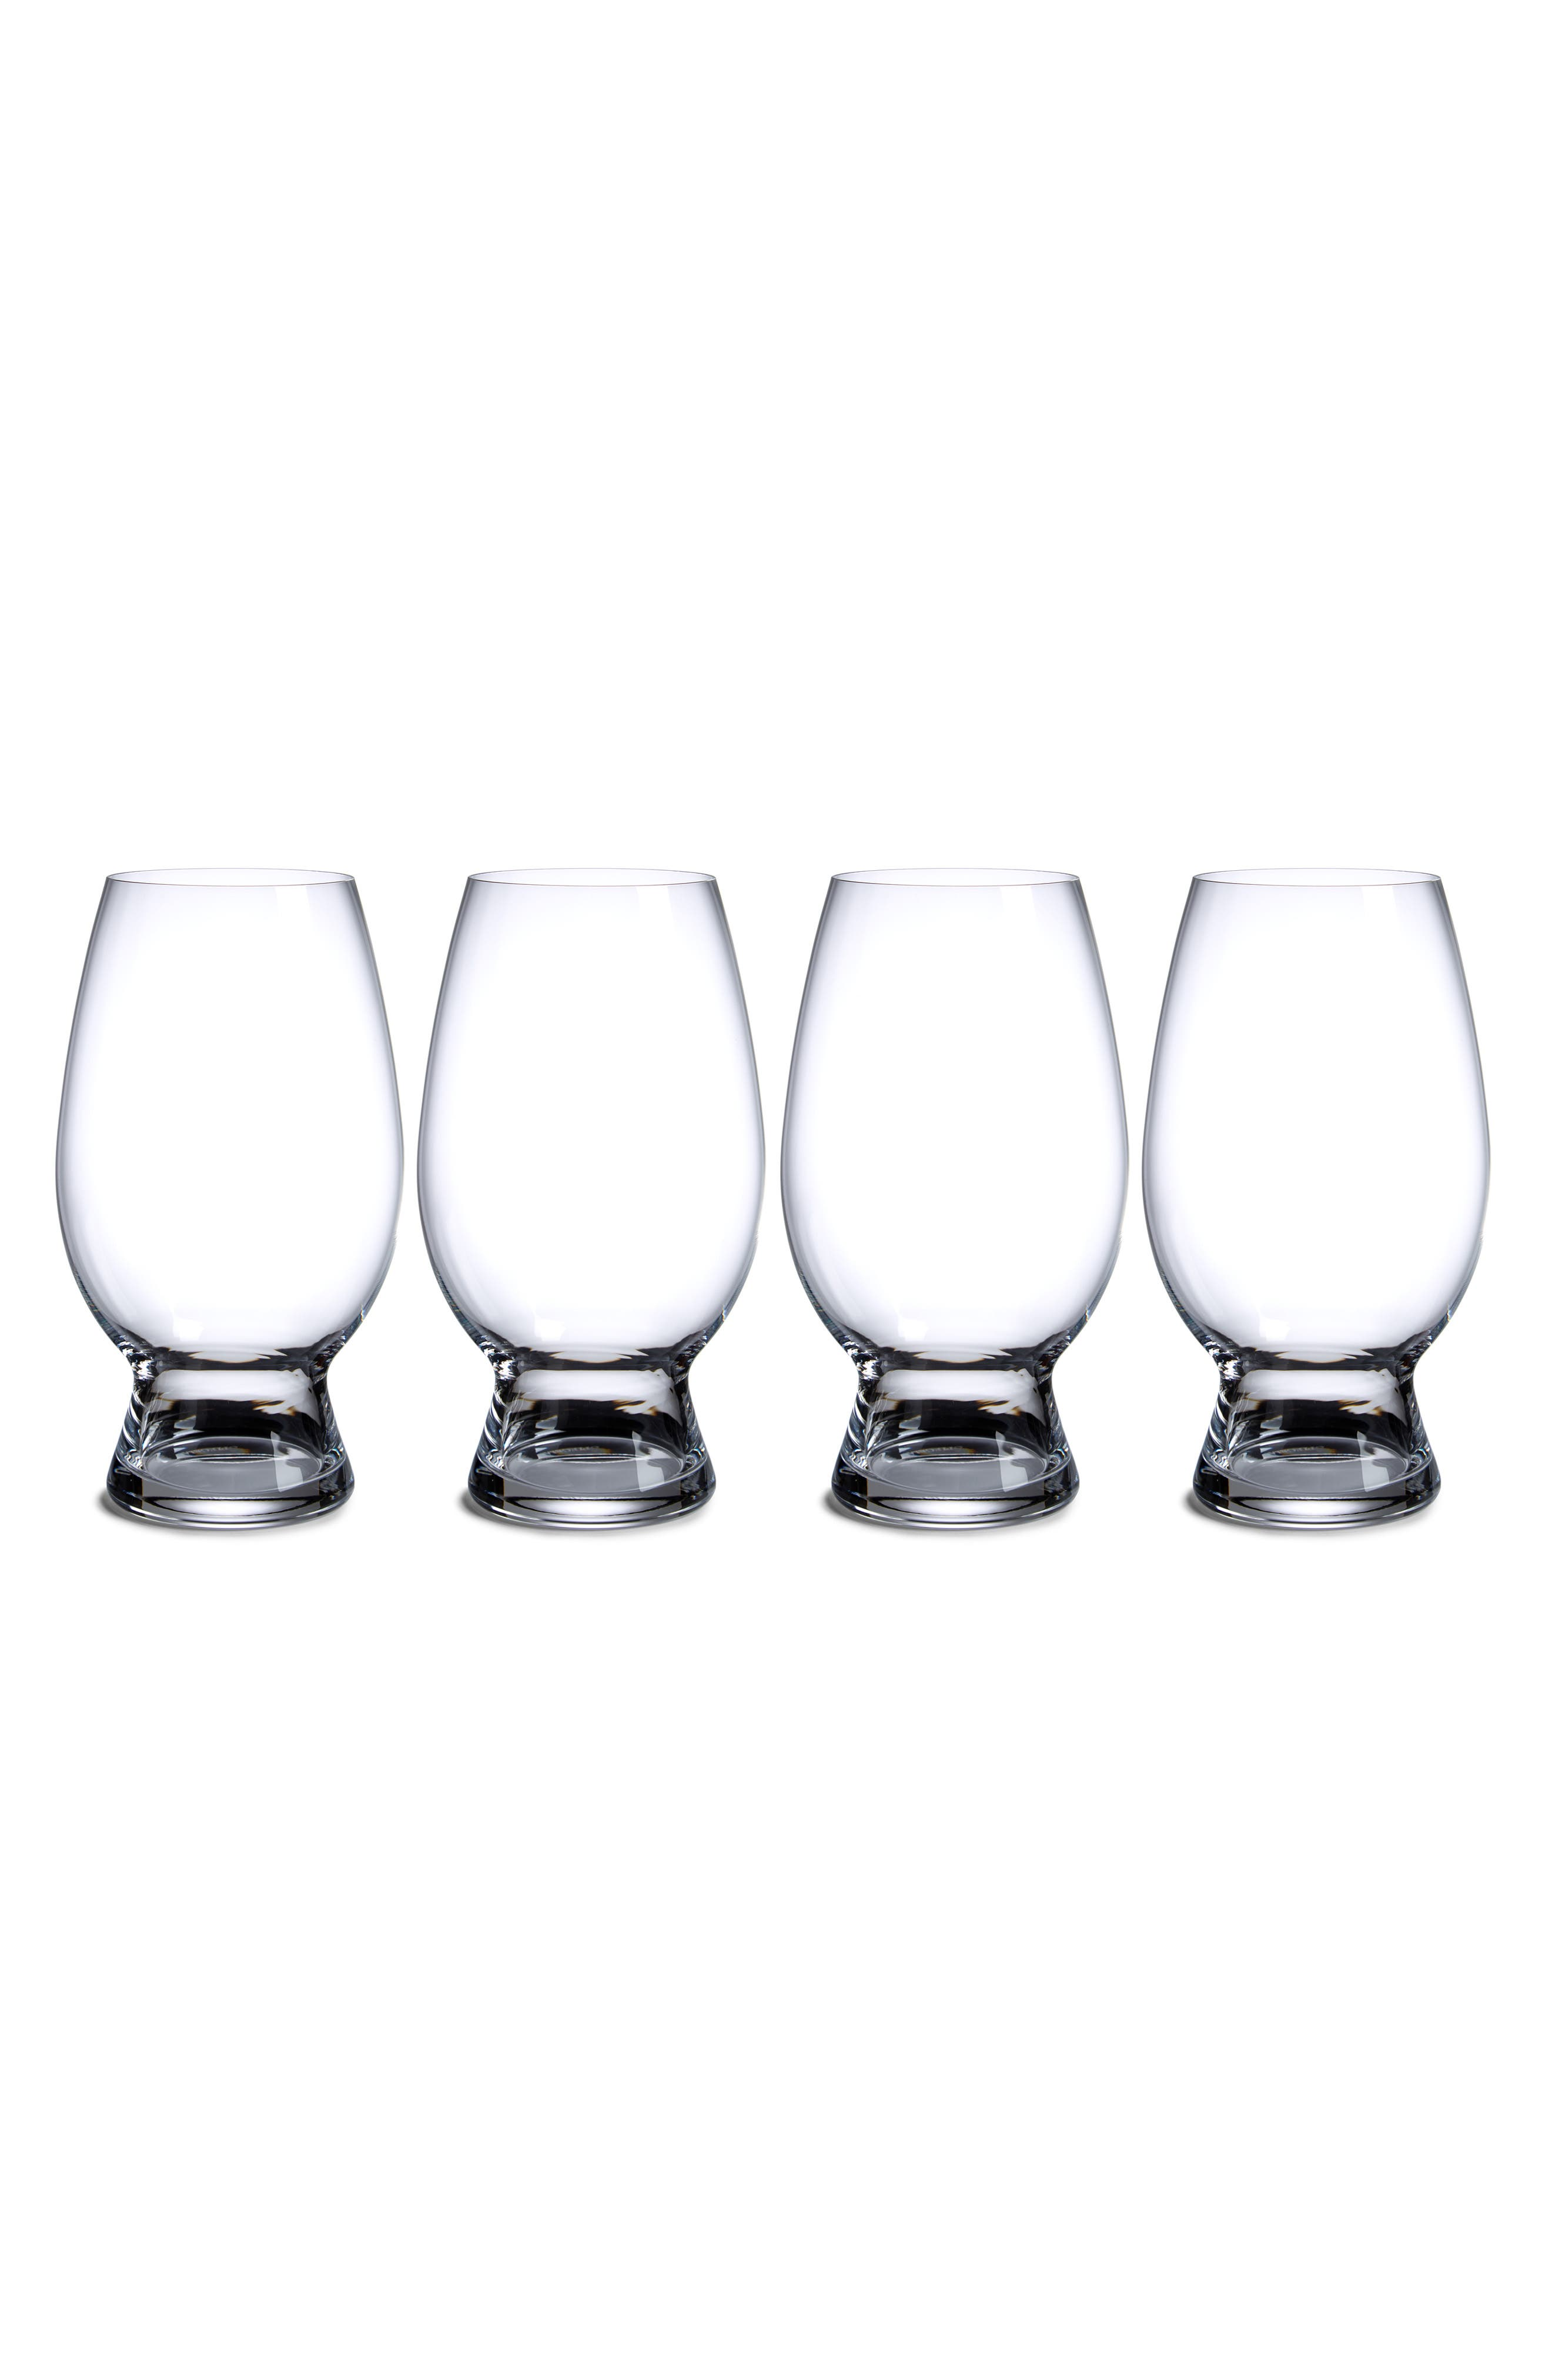 Set of 4 American Wheat Beer Glasses,                         Main,                         color, Clear